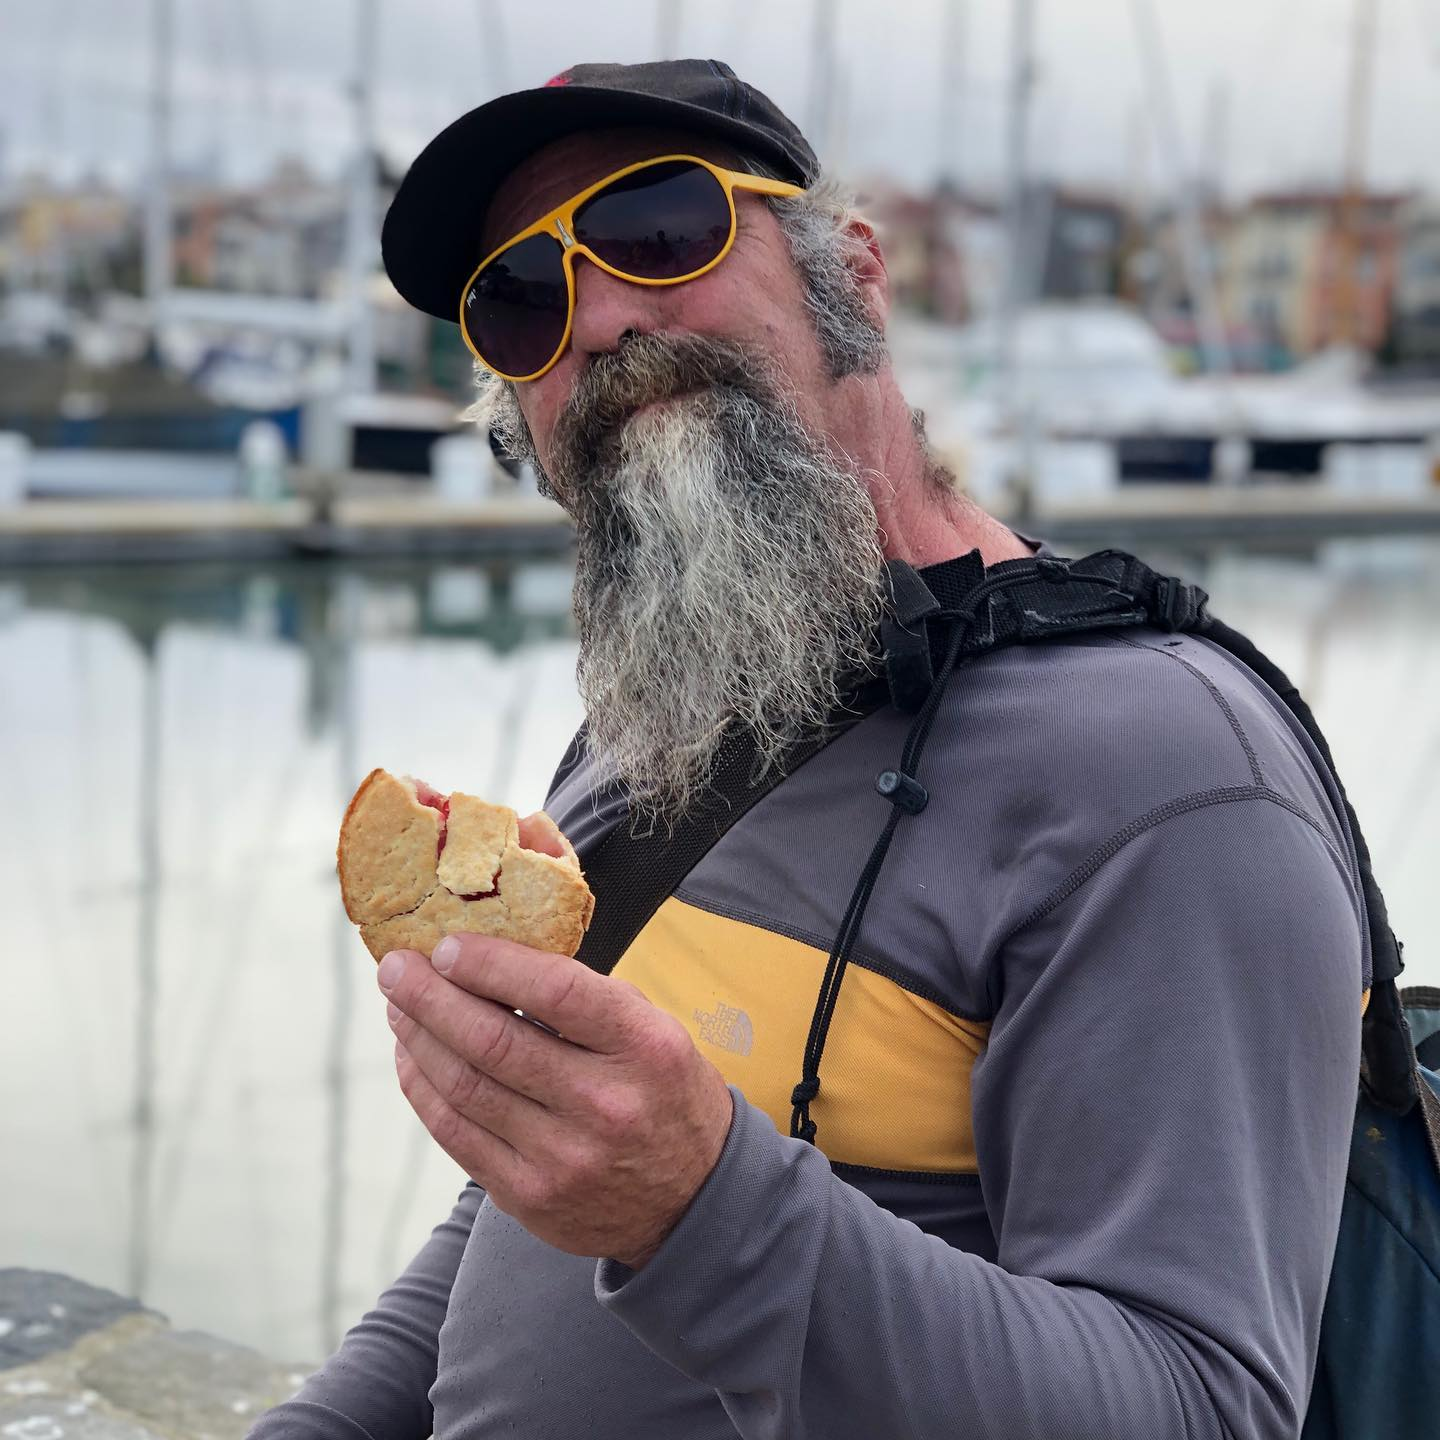 2021 Rolex Big Boat series day 3 on Stewball. Slamon got a cherry pie, great start to the day :)